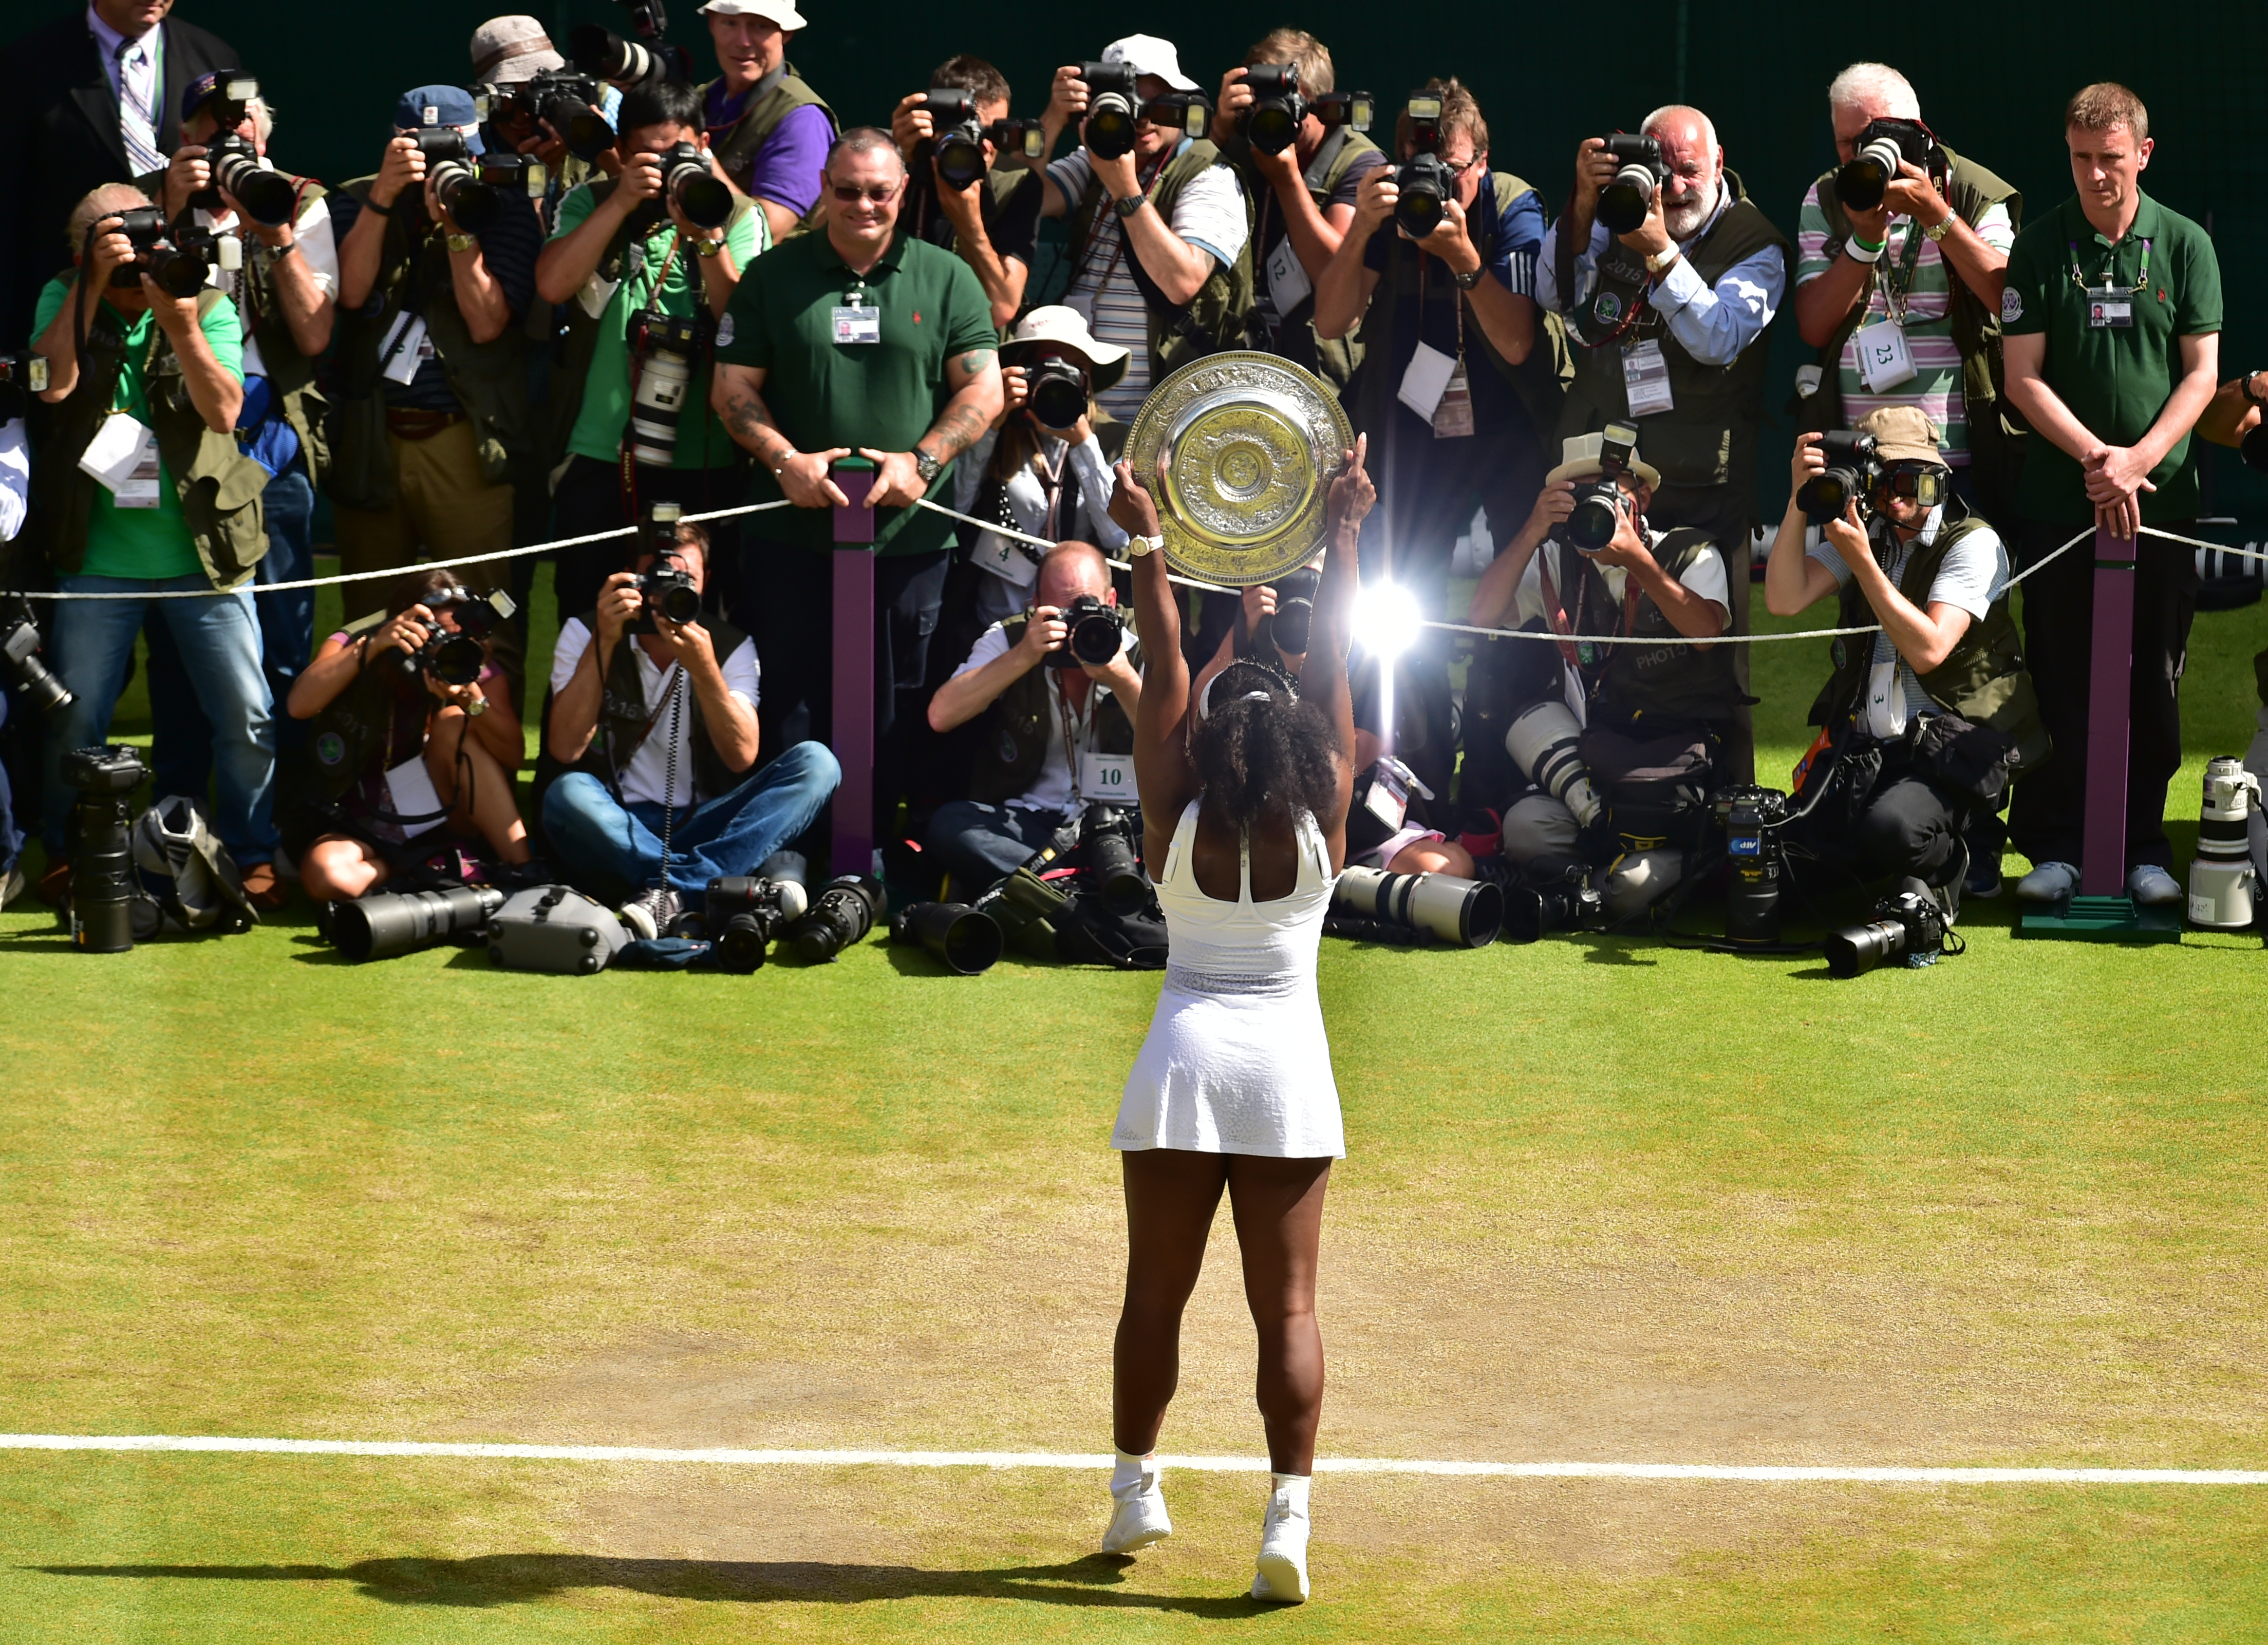 Serena Williams of the United States holds up the trophy toward the media after winning the women's singles final against Garbine Muguruza of Spain at the All England Lawn Tennis Championships in Wimbledon, London, Saturday July 11, 2015. (Dominic Lipinsk